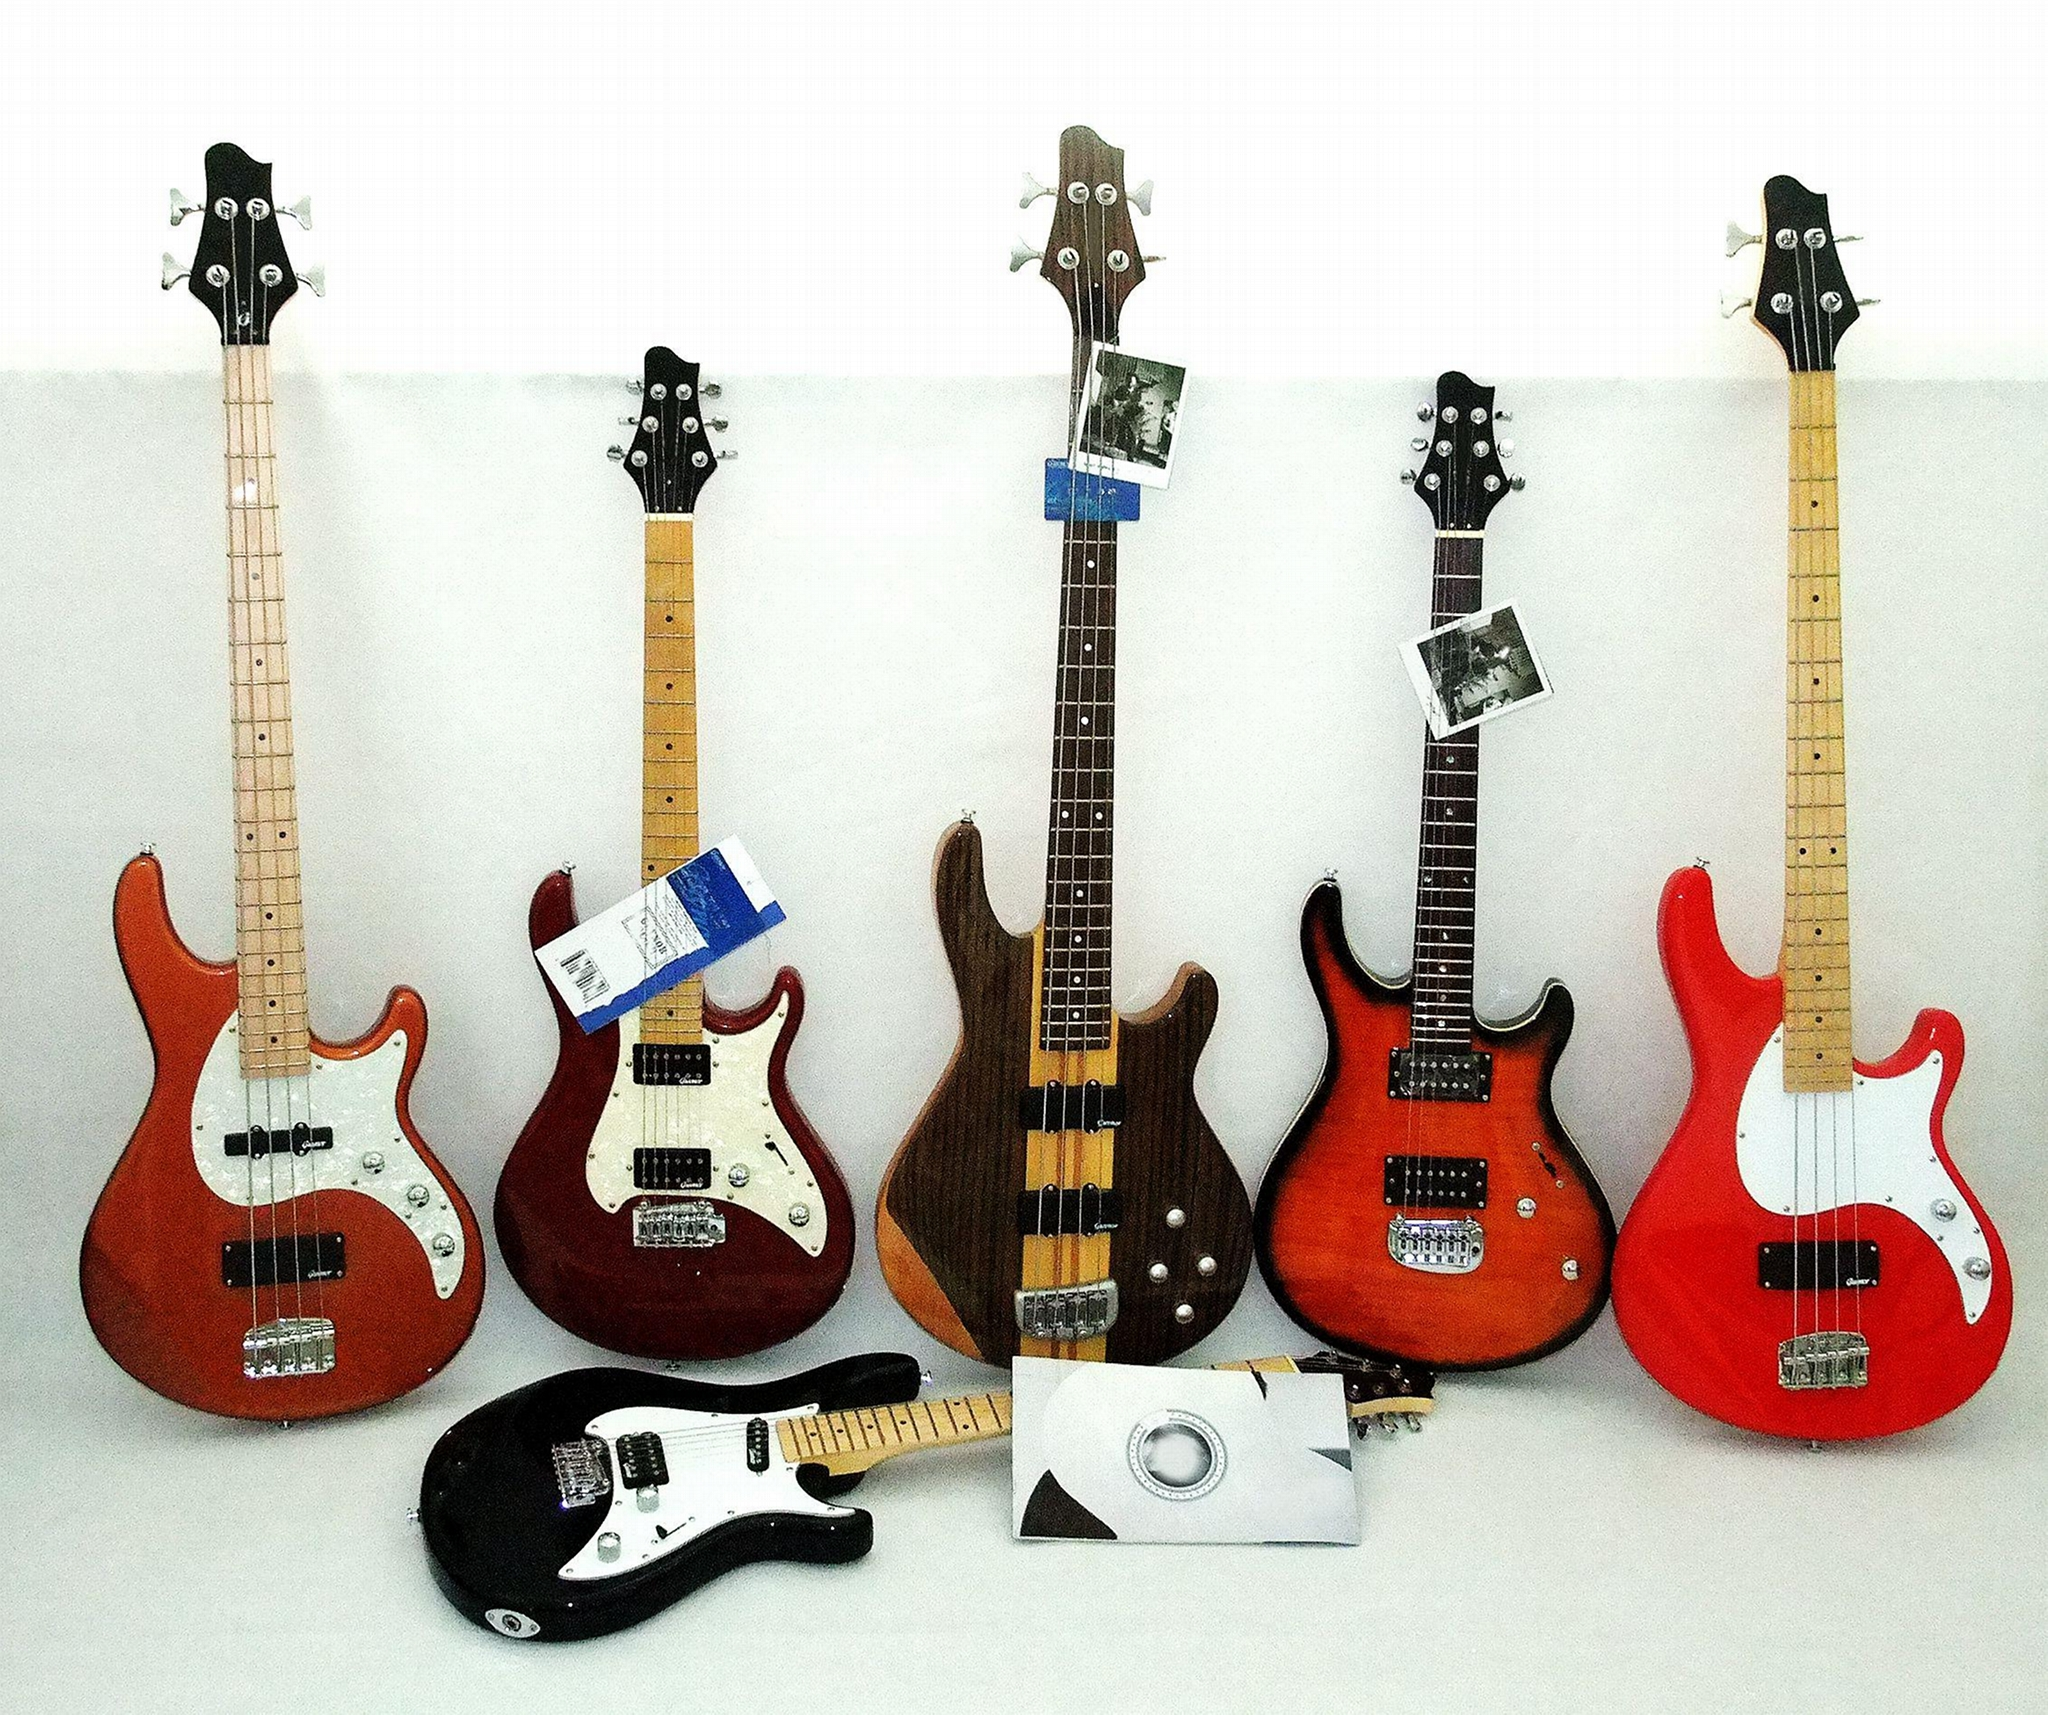 2020 Jingying Music Bass Guitars and Electric Guitars with Custom Brand 1